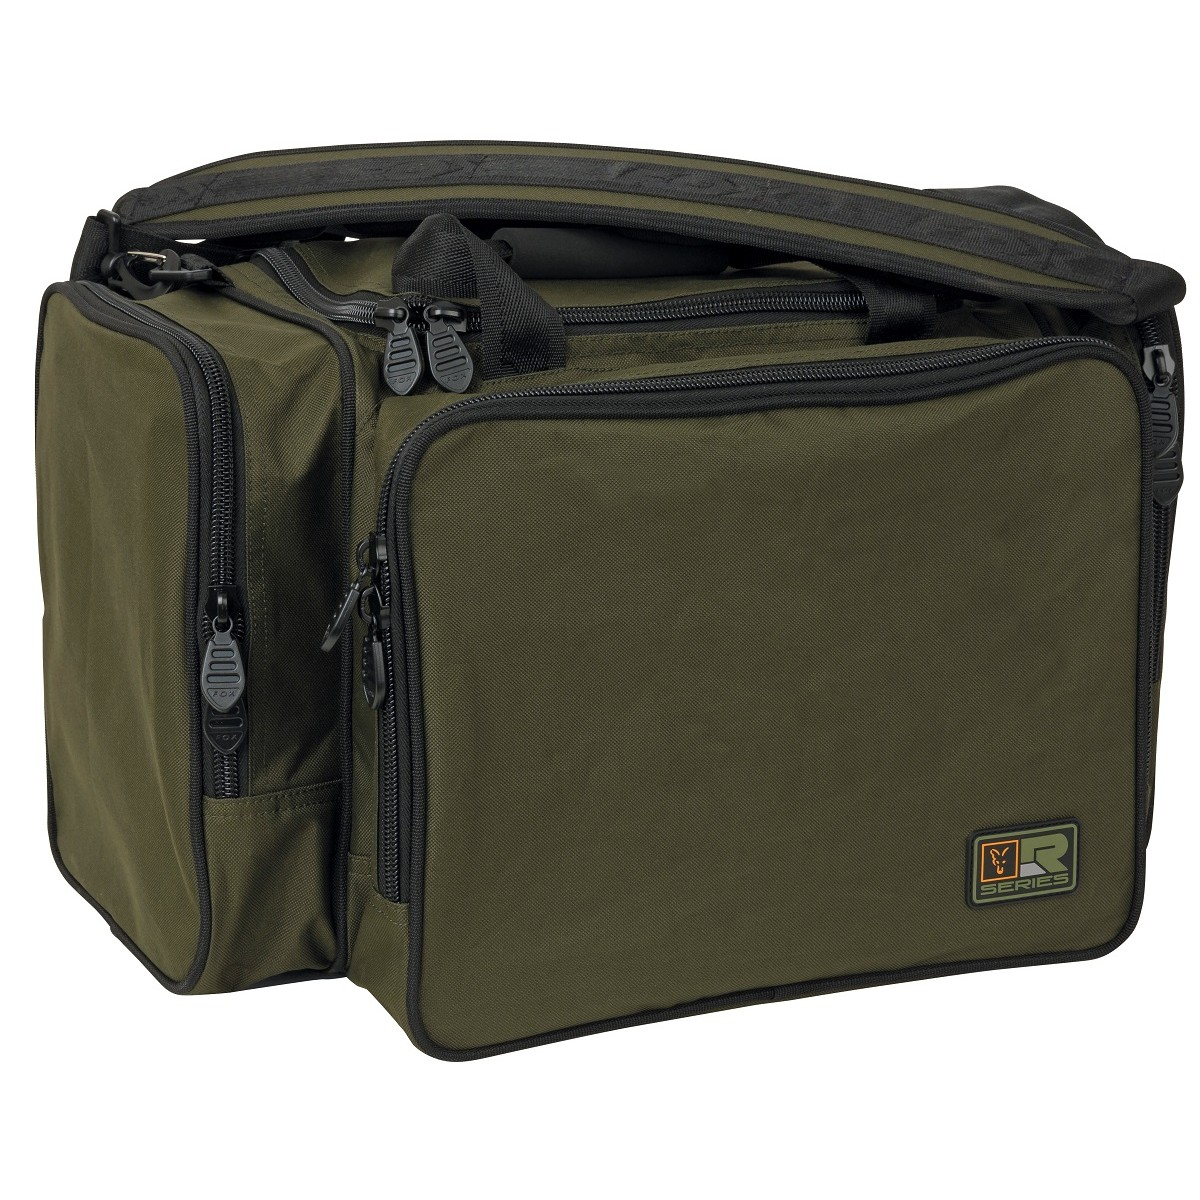 Сак рибарски FOX R-Series Carryall Medium